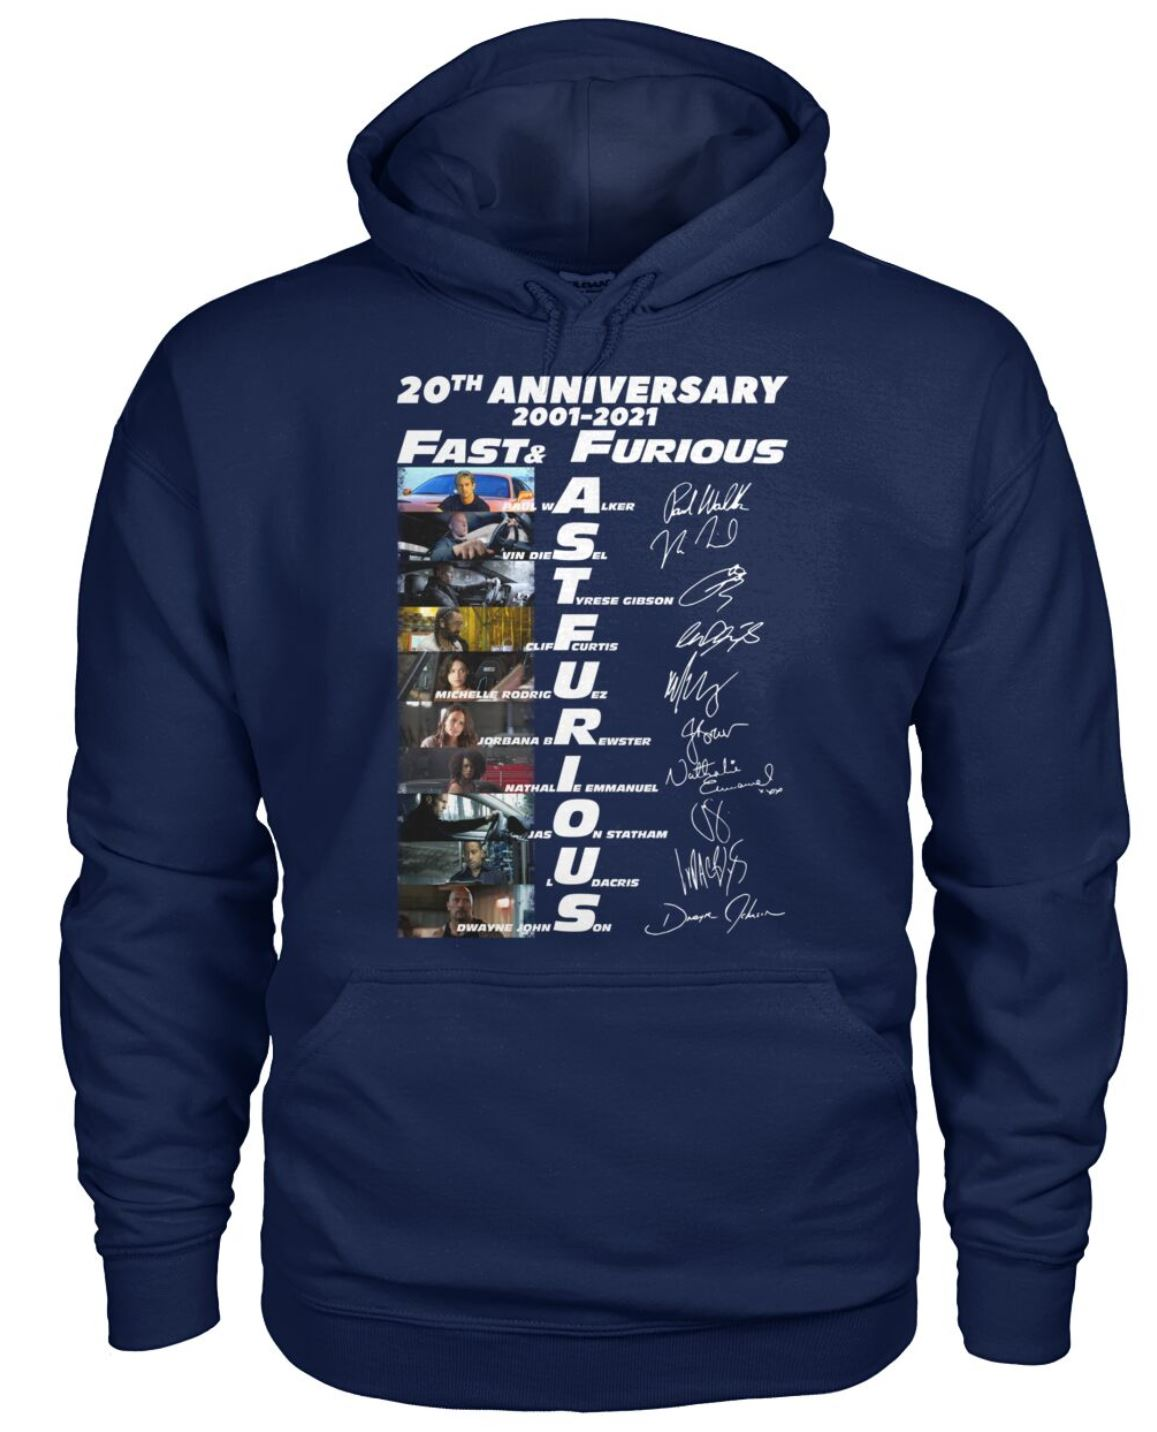 20th anniversary fast and furious hoodie